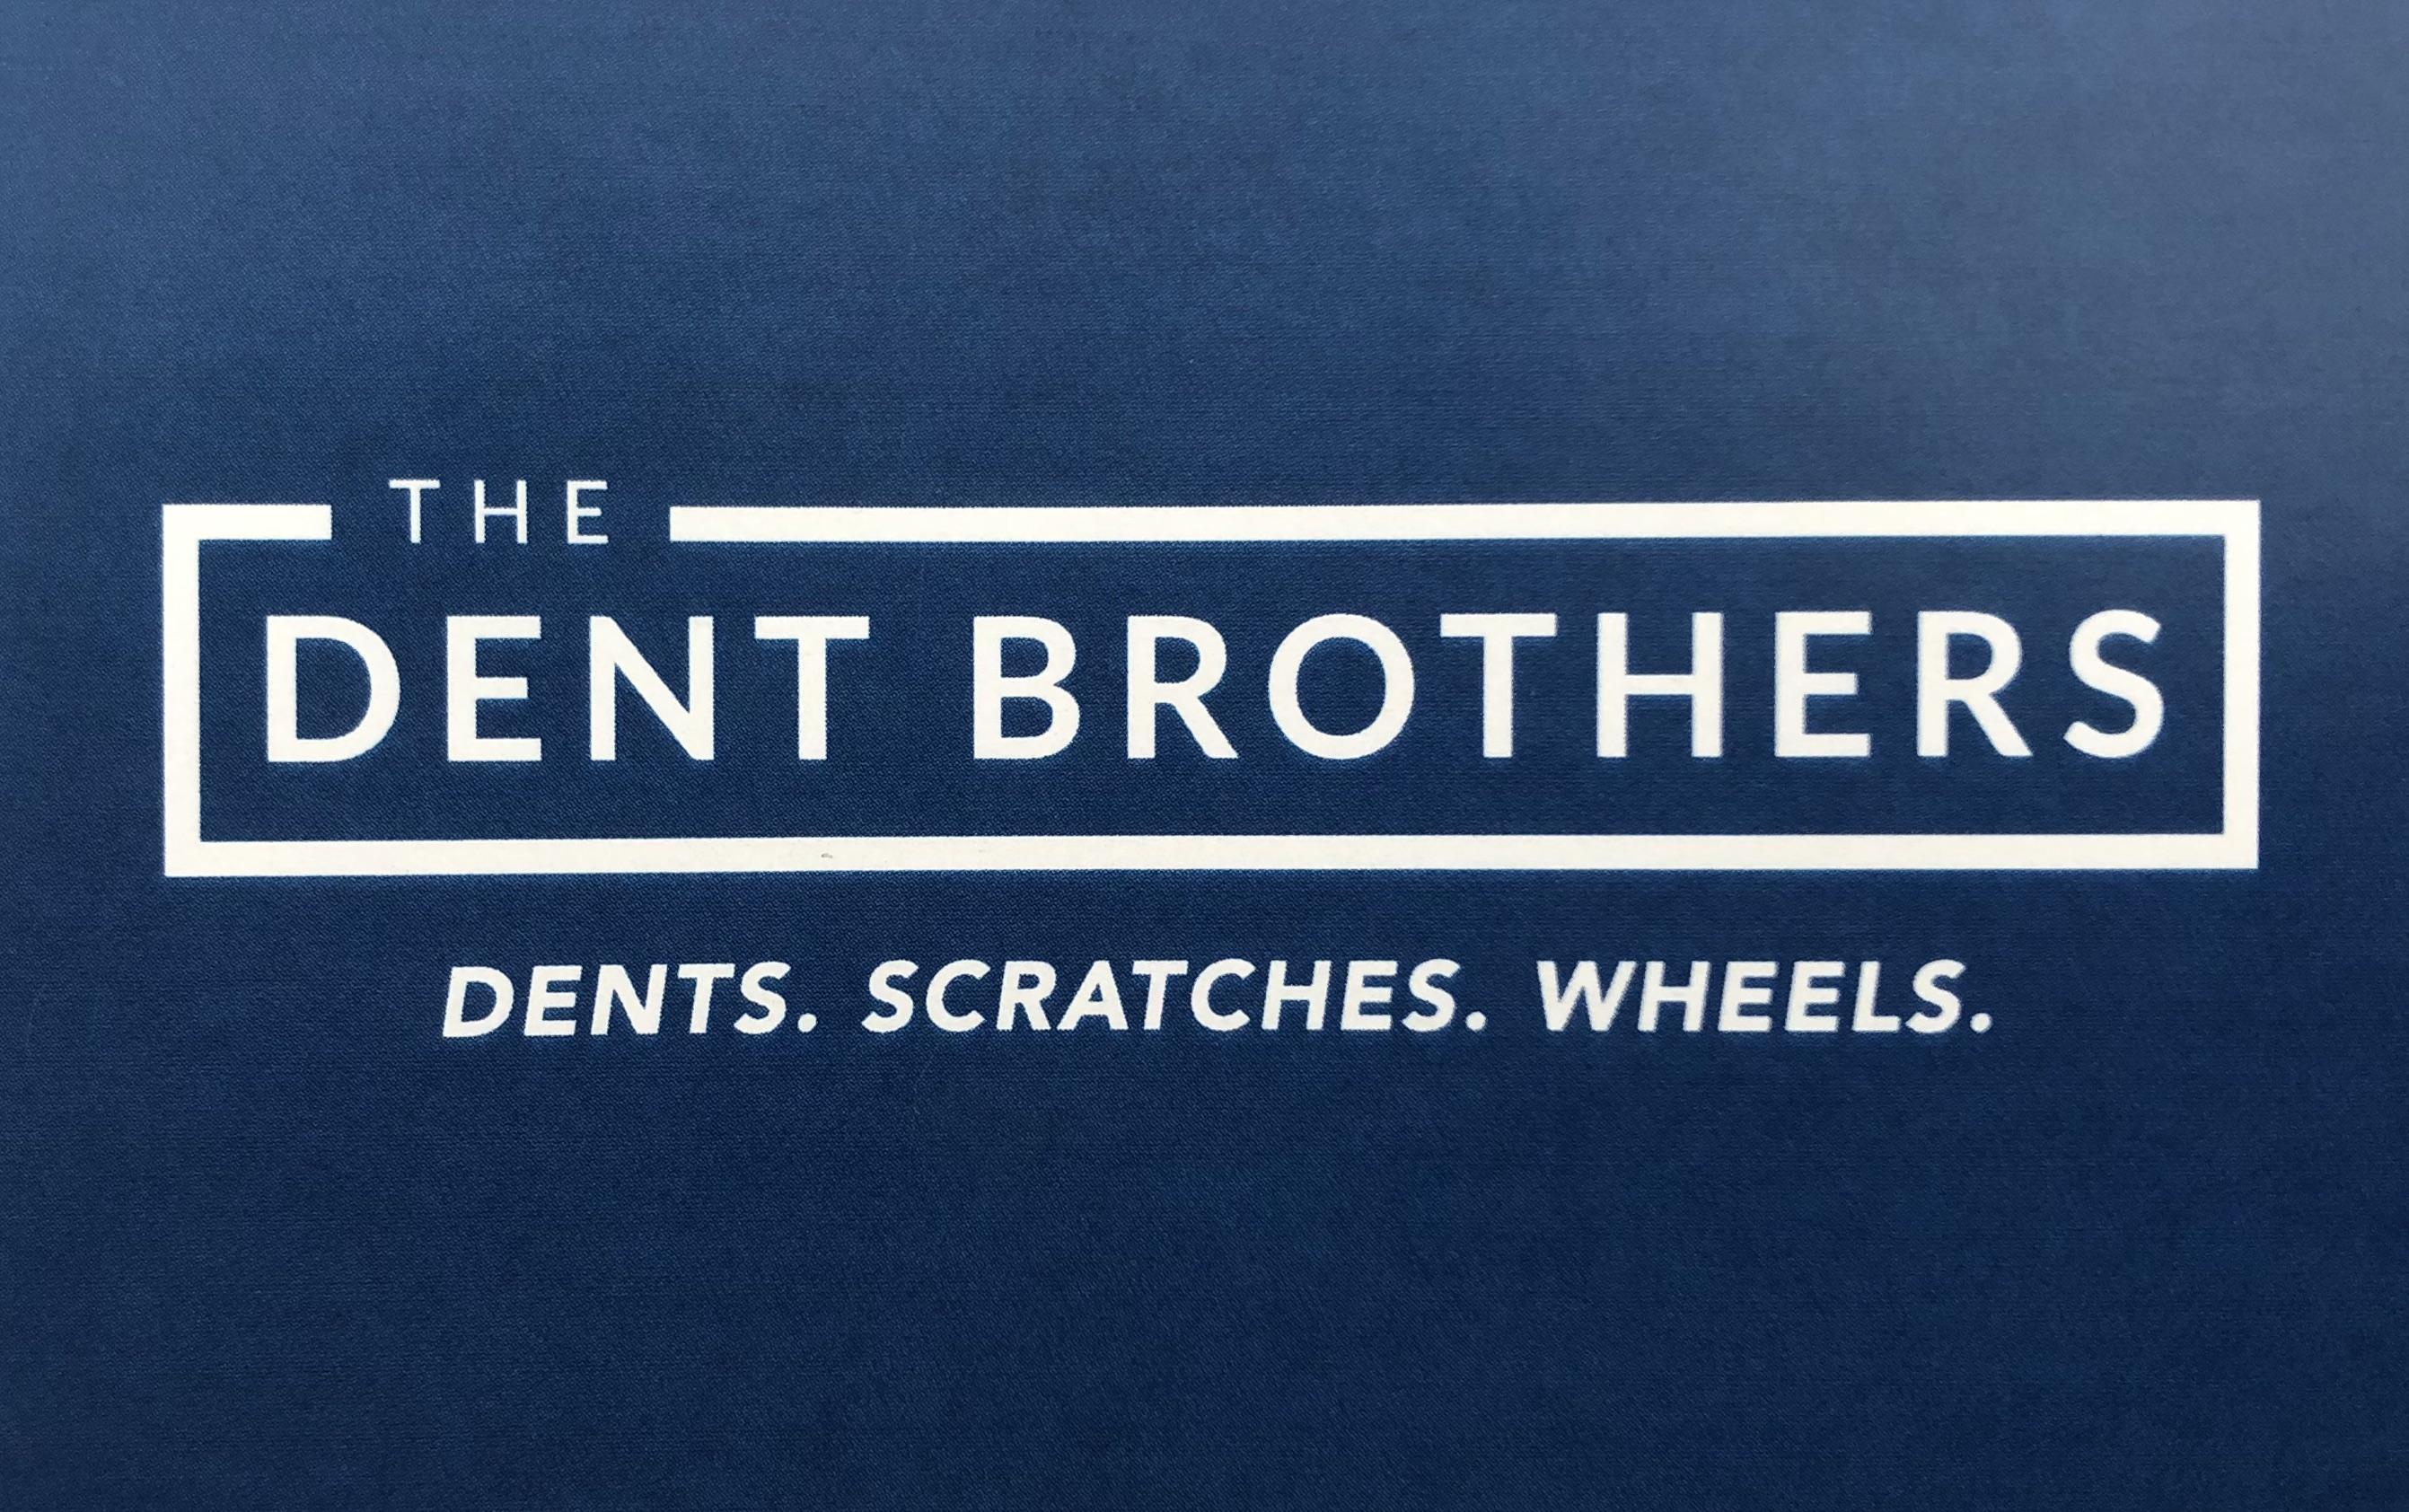 The Dent Brothers Logo